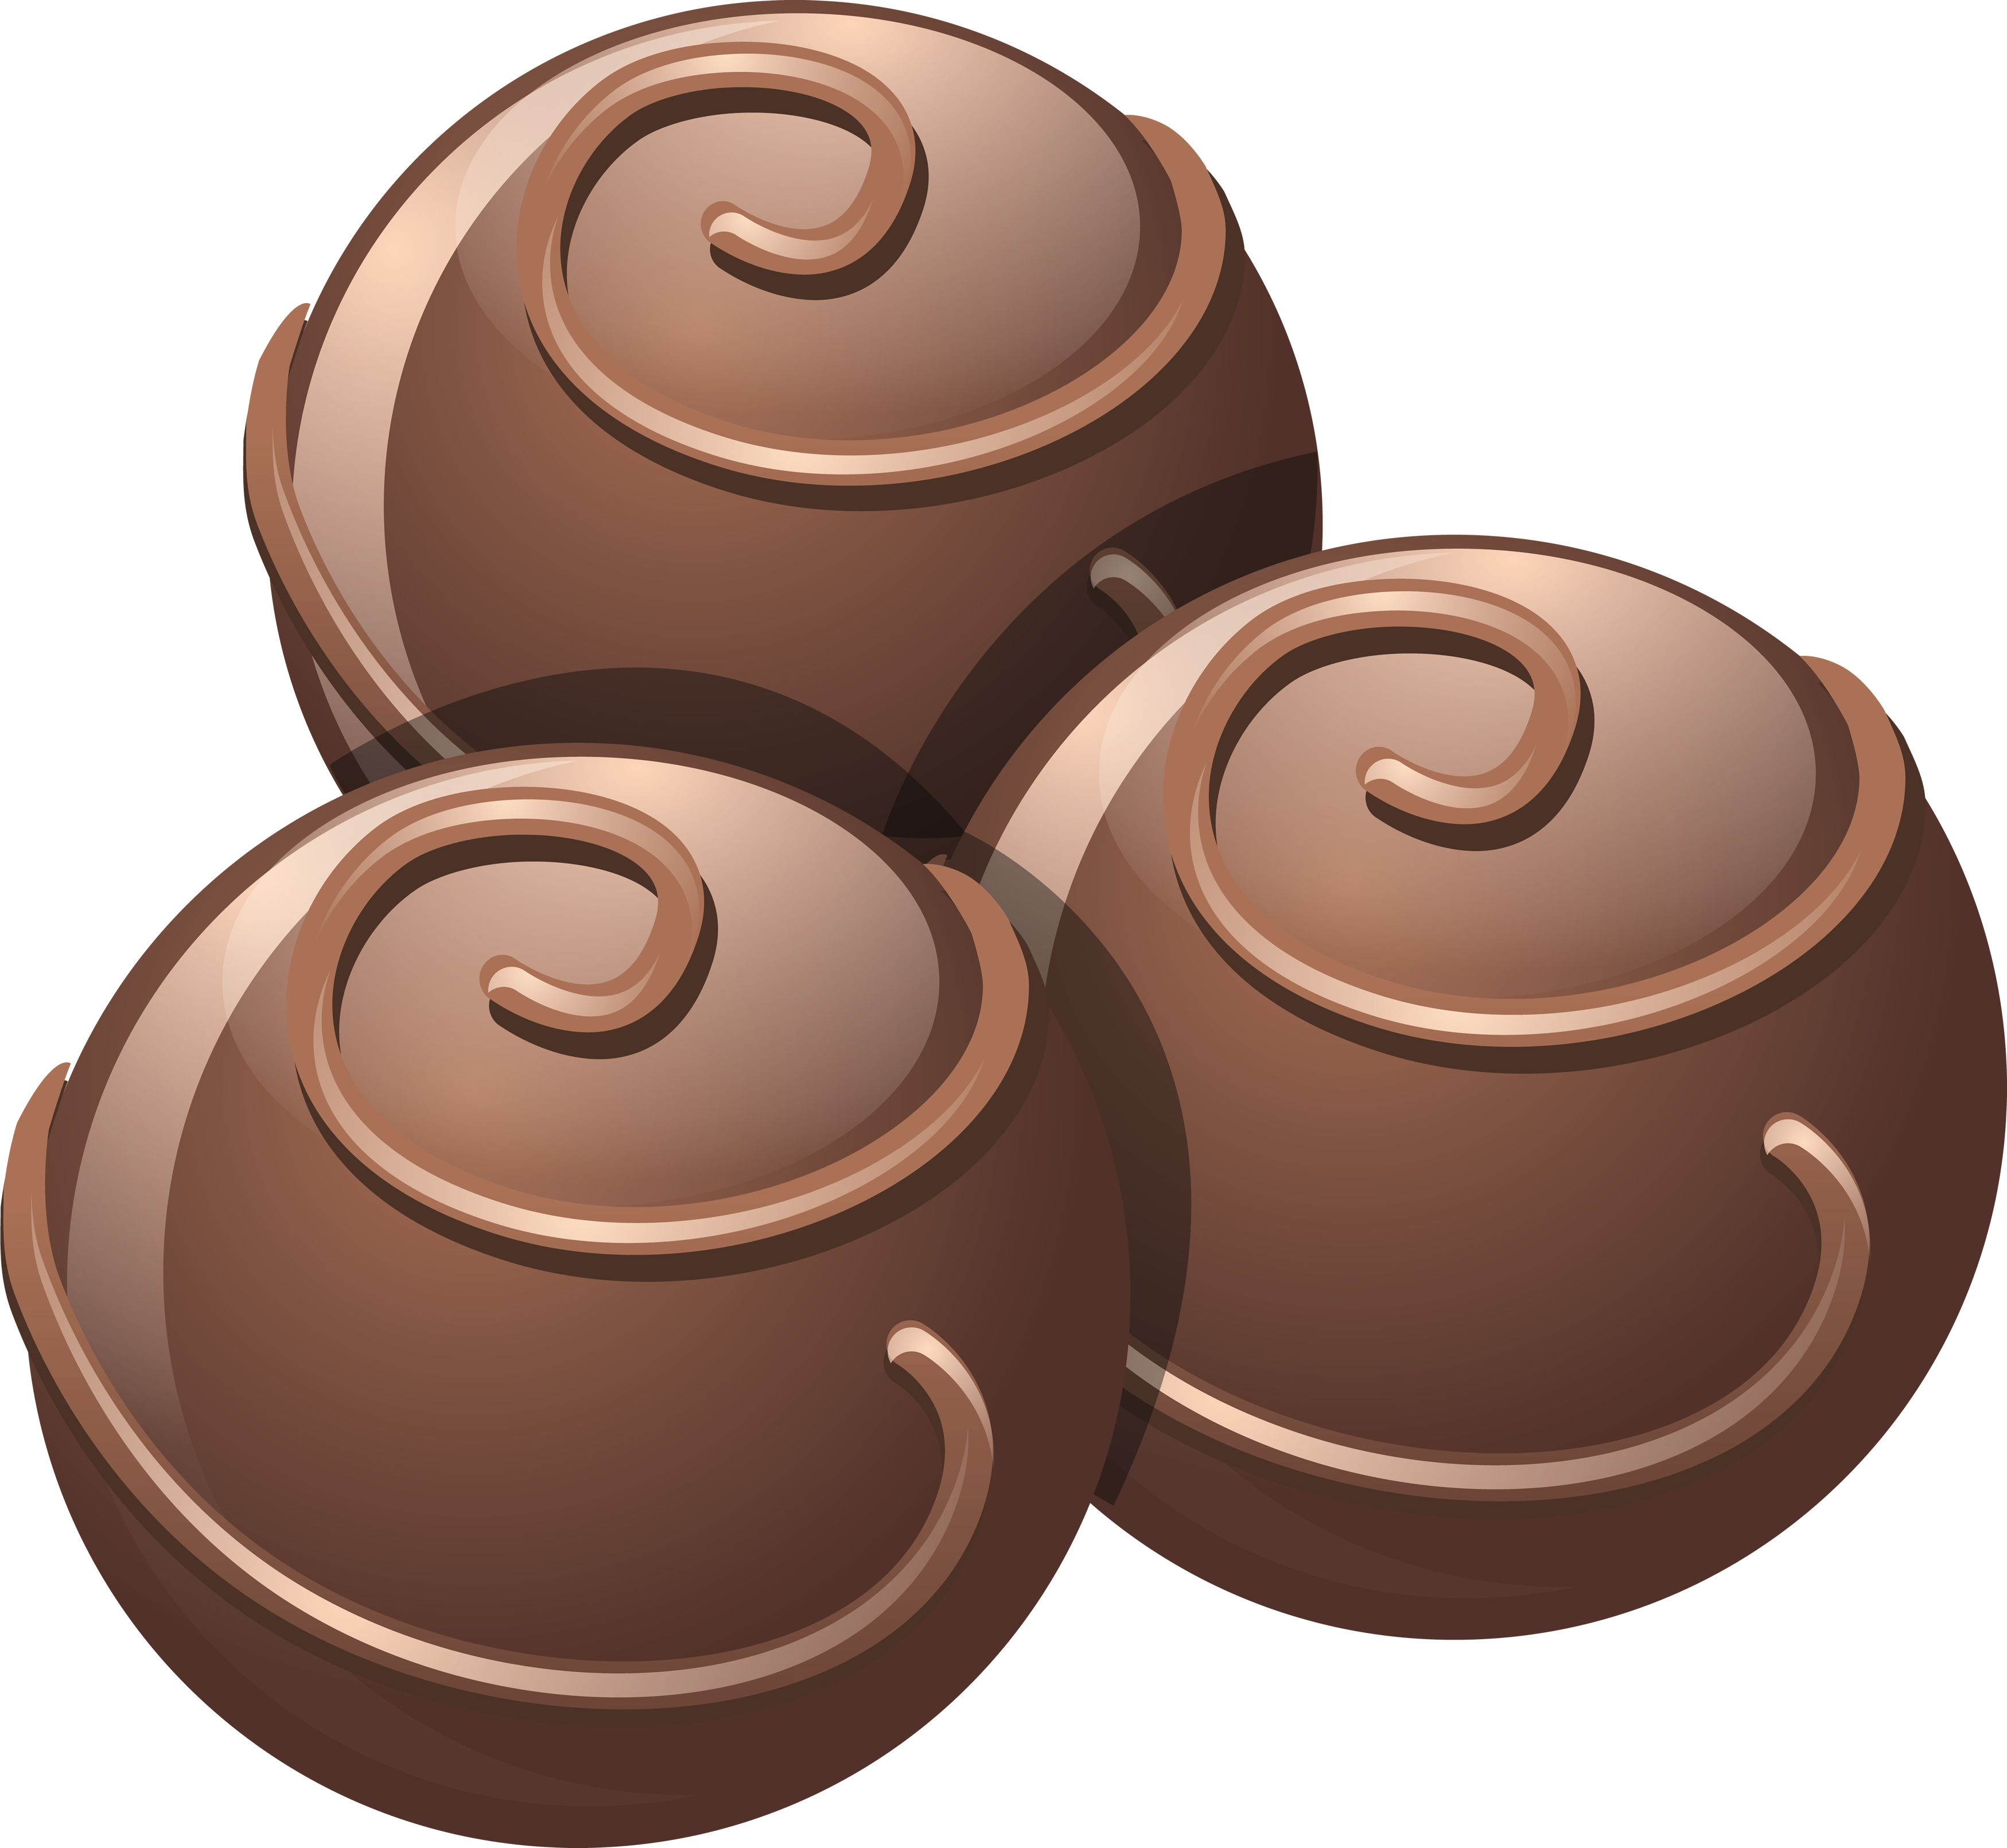 28+ Collection of Chocolate Clipart Png | High quality, free ... png free